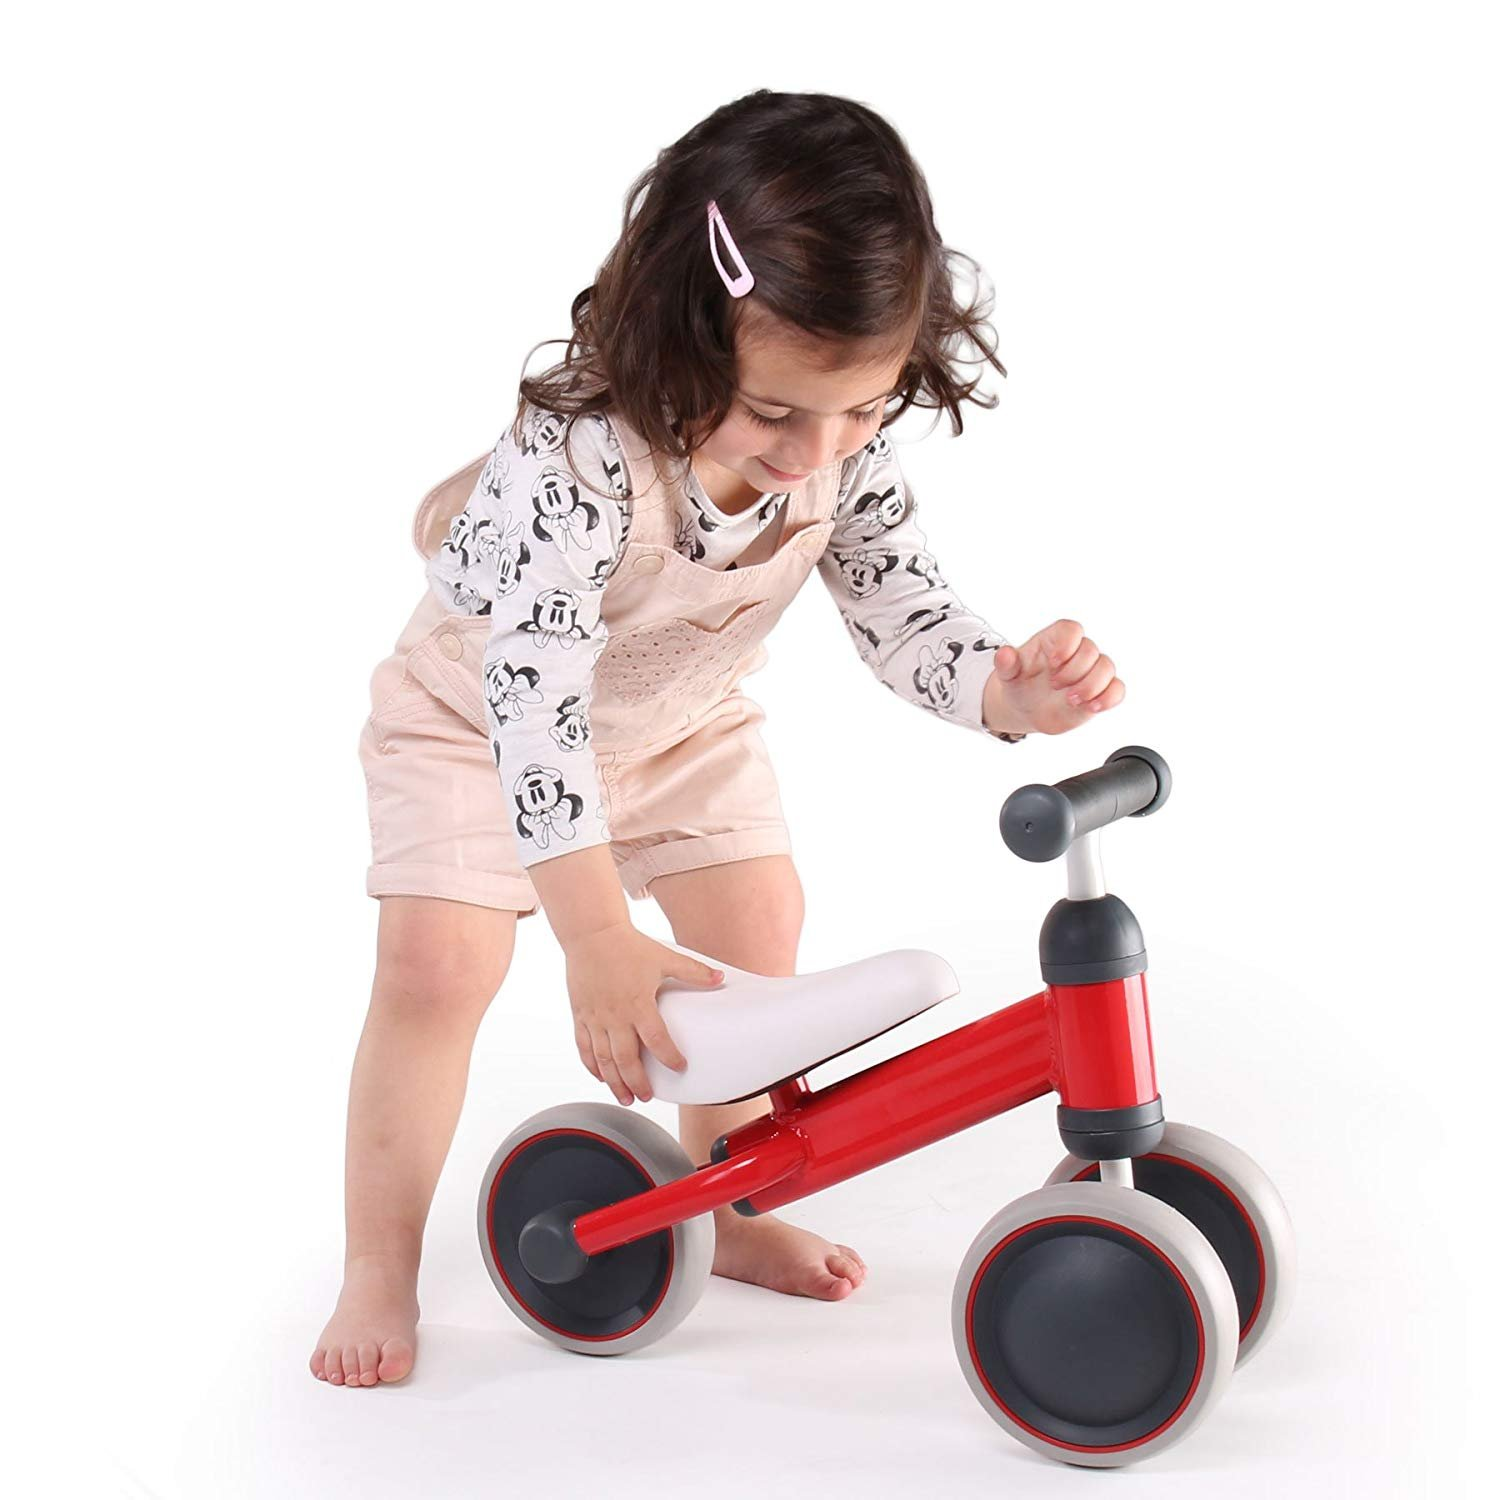 YesIndeed. Baby Balance Bike, Mini Bike, Bicycle for Children, 10-28 Months Toddler Tricycle Learn to Walk and Keep Balance. Boys and Girls Blue and Red. 4 Years Warranty